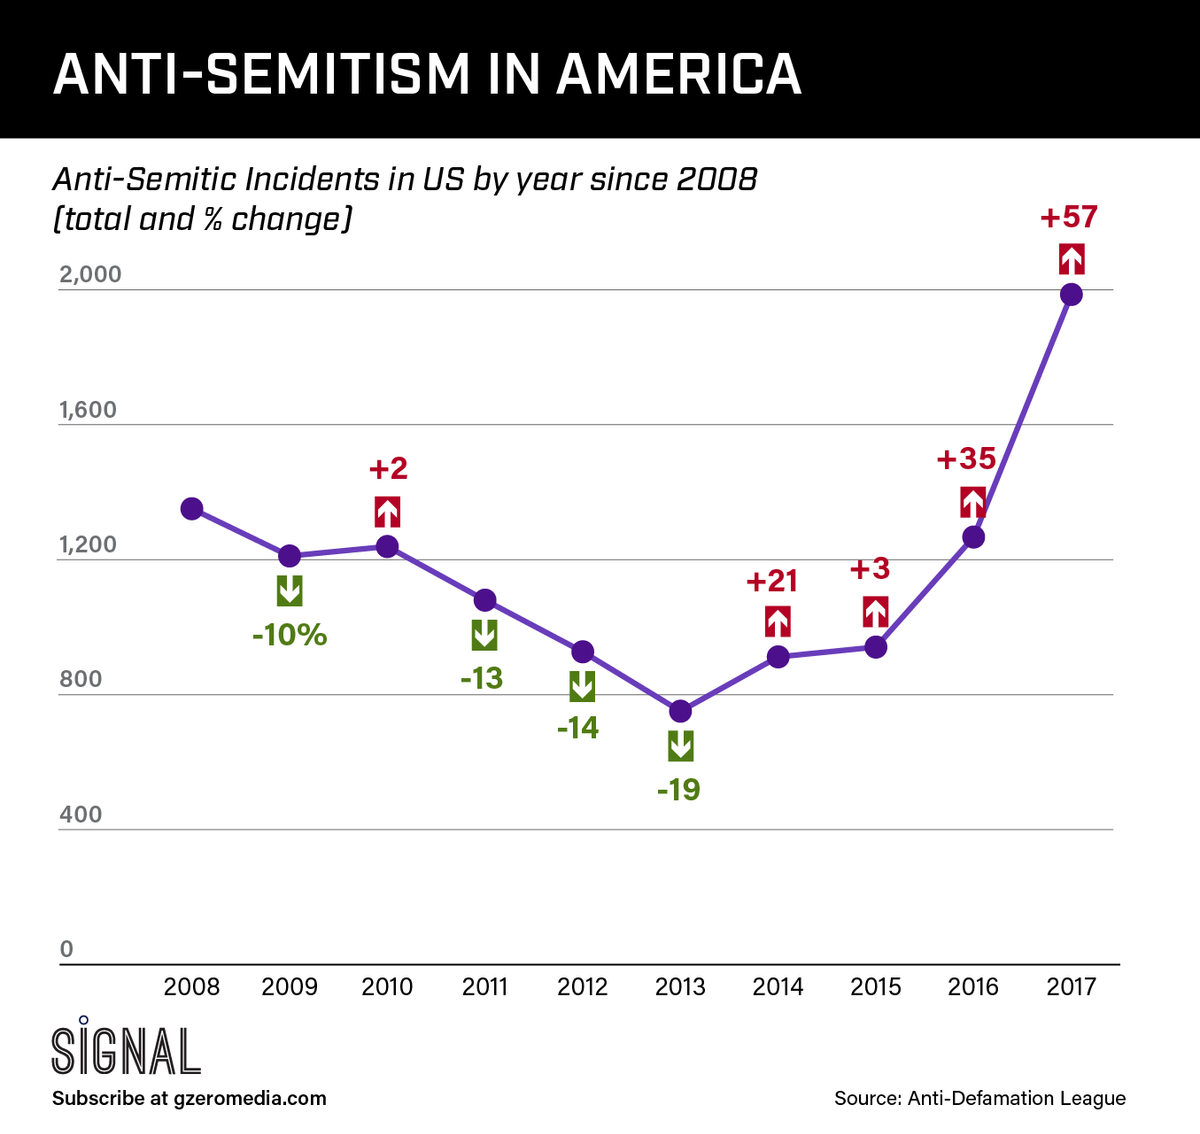 THE GRAPHIC TRUTH: ANTI-SEMITISM IN THE UNITED STATES